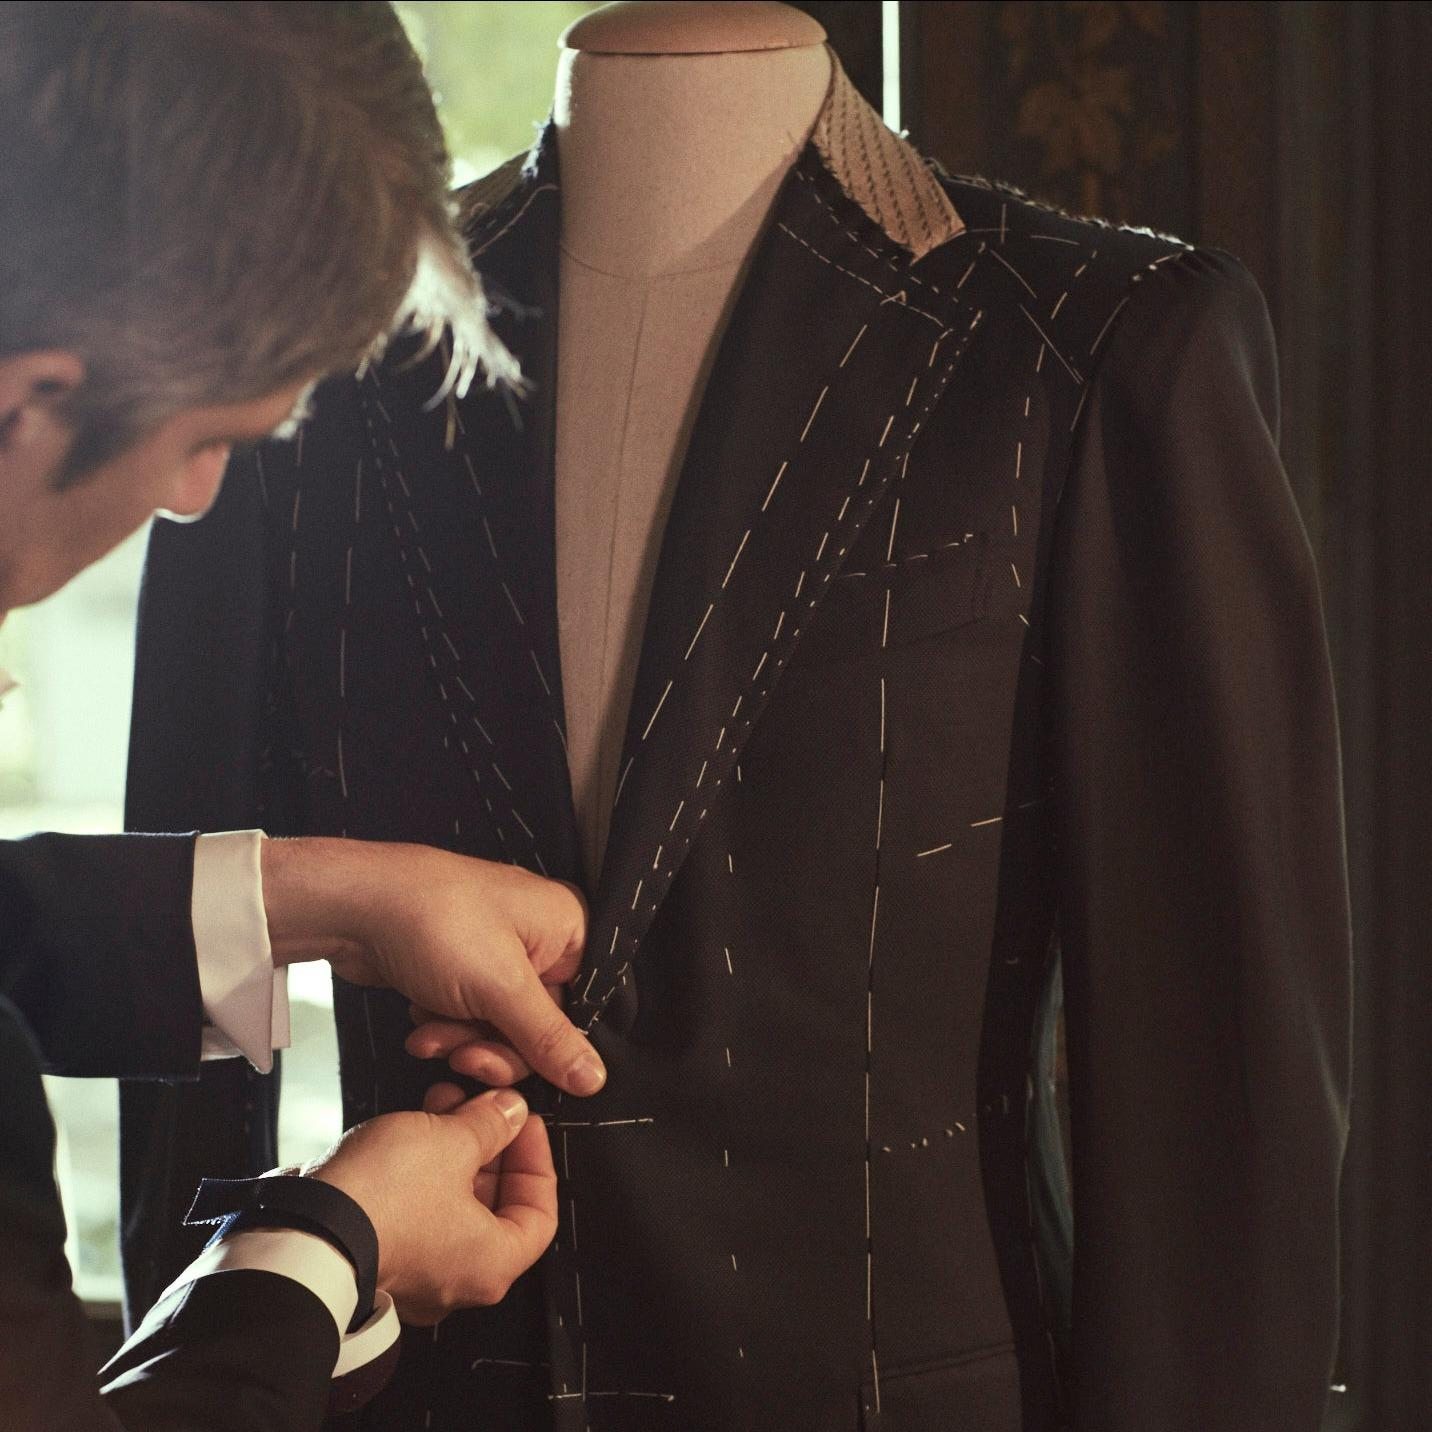 Get your tuxedo rental today from Men's Wearhouse. Browse online or in-store from our collection of men's tuxedos and formalwear for weddings, proms & more.